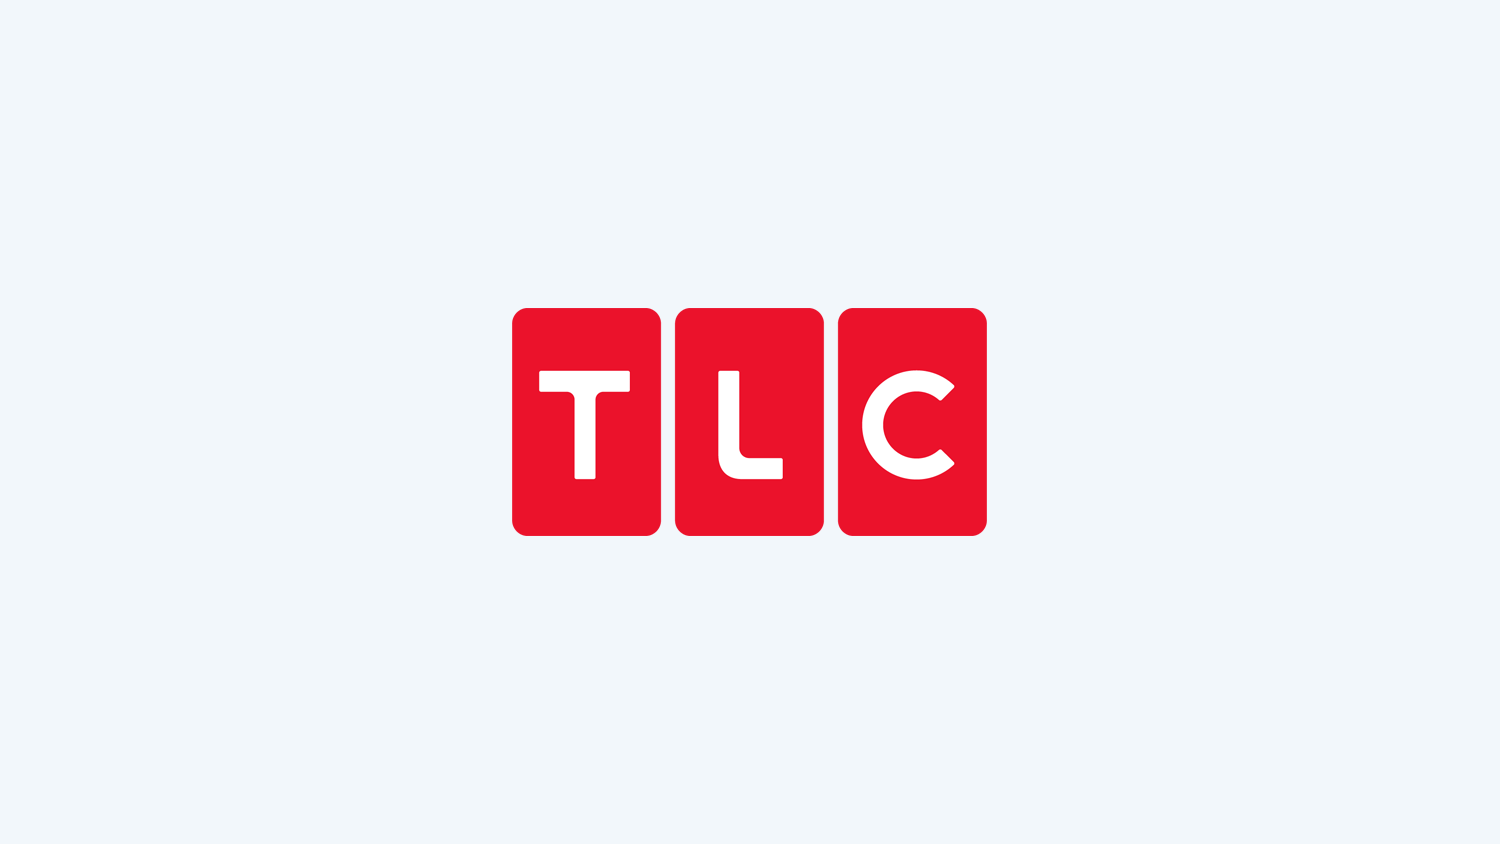 How To Activate TLC On Any Device? 3